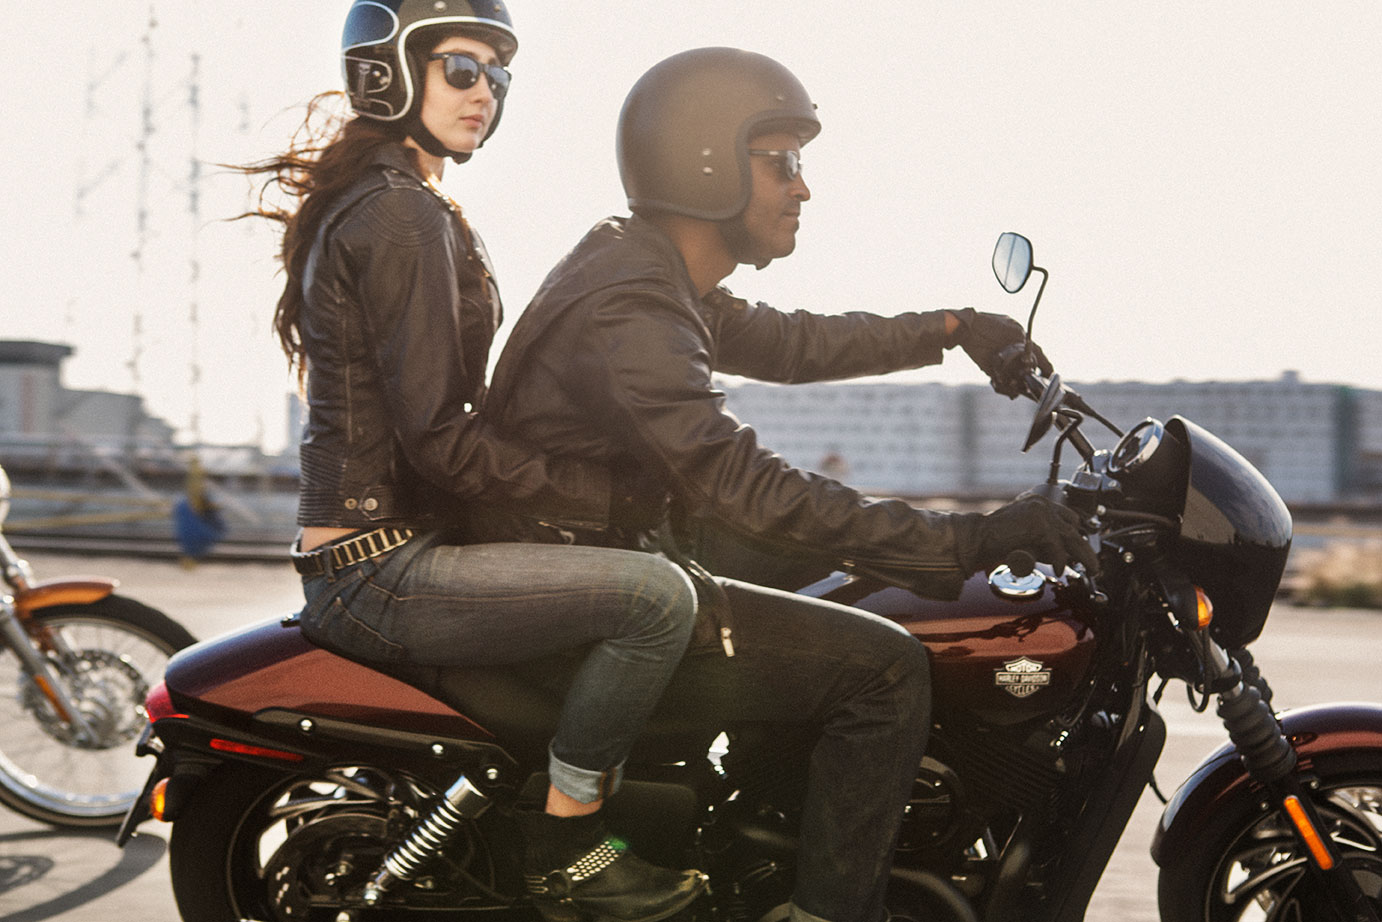 HARLEY_DAVIDSON_SHOT_10_RIDING_SHOT-0190